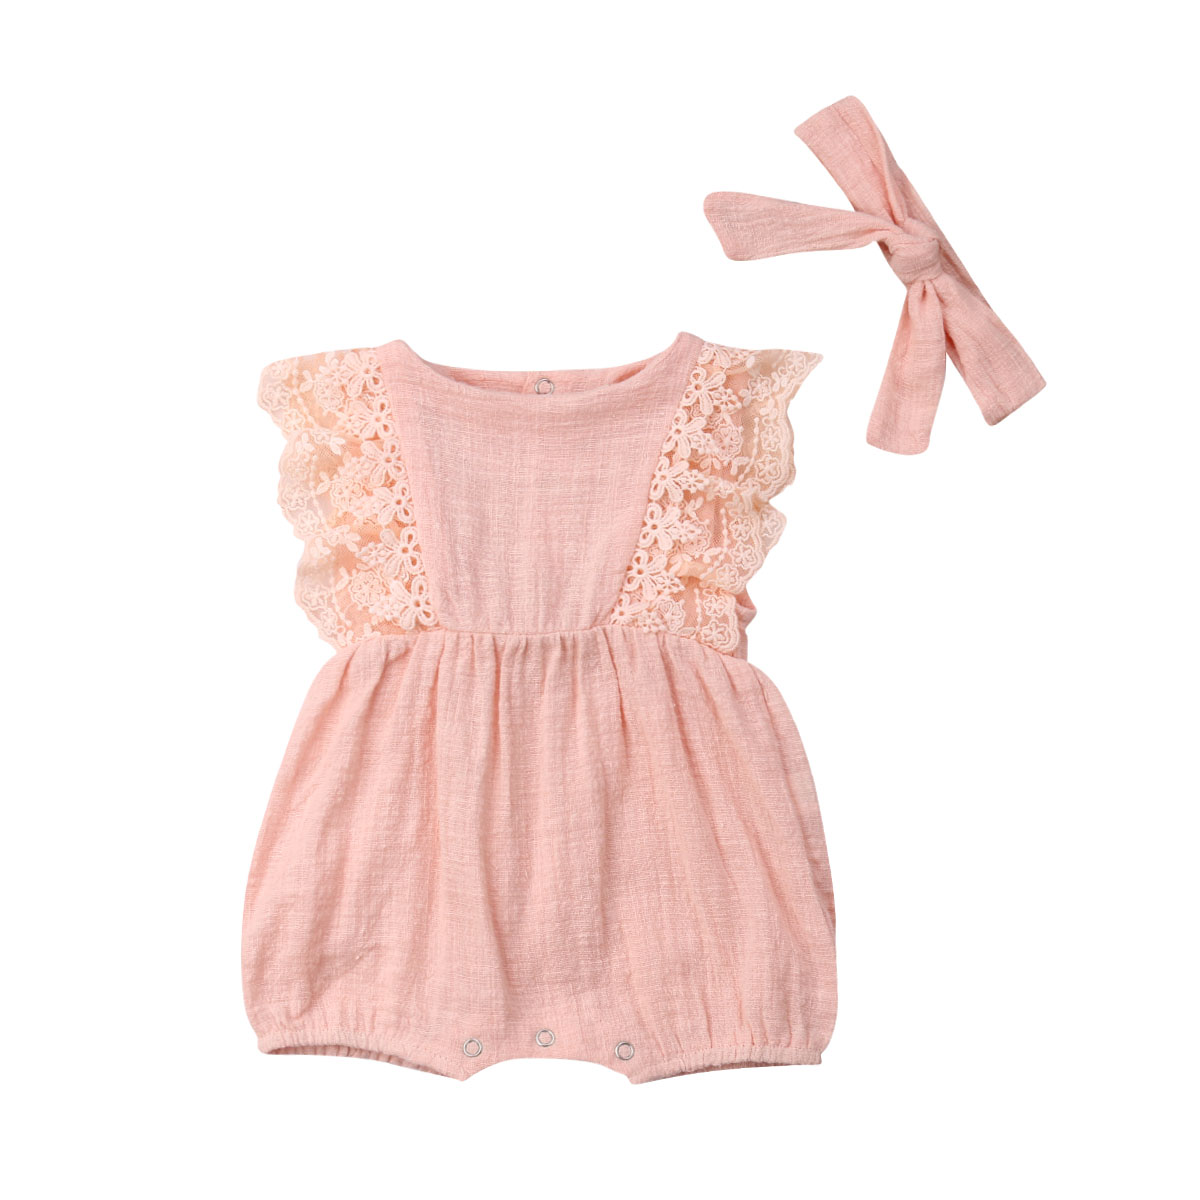 Princess Infant Newborn Baby Girls Clothing Lace Ruffles Baby Girl   Romper   Jumpsuit Toddler Baby Girl Costumes